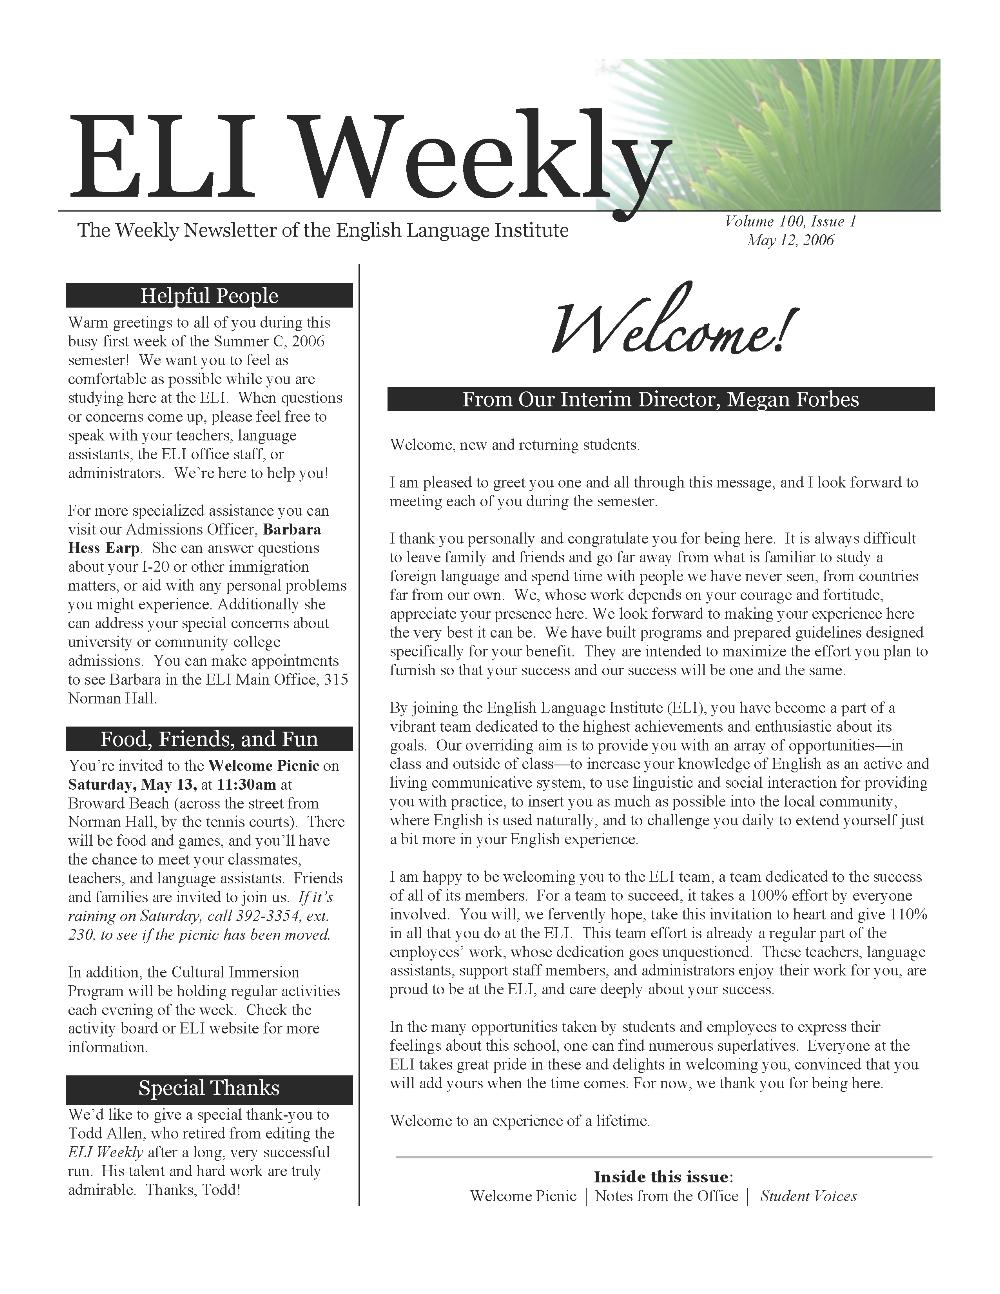 ELI weekly : the weekly newsletter of the English Language Institute - Page 1